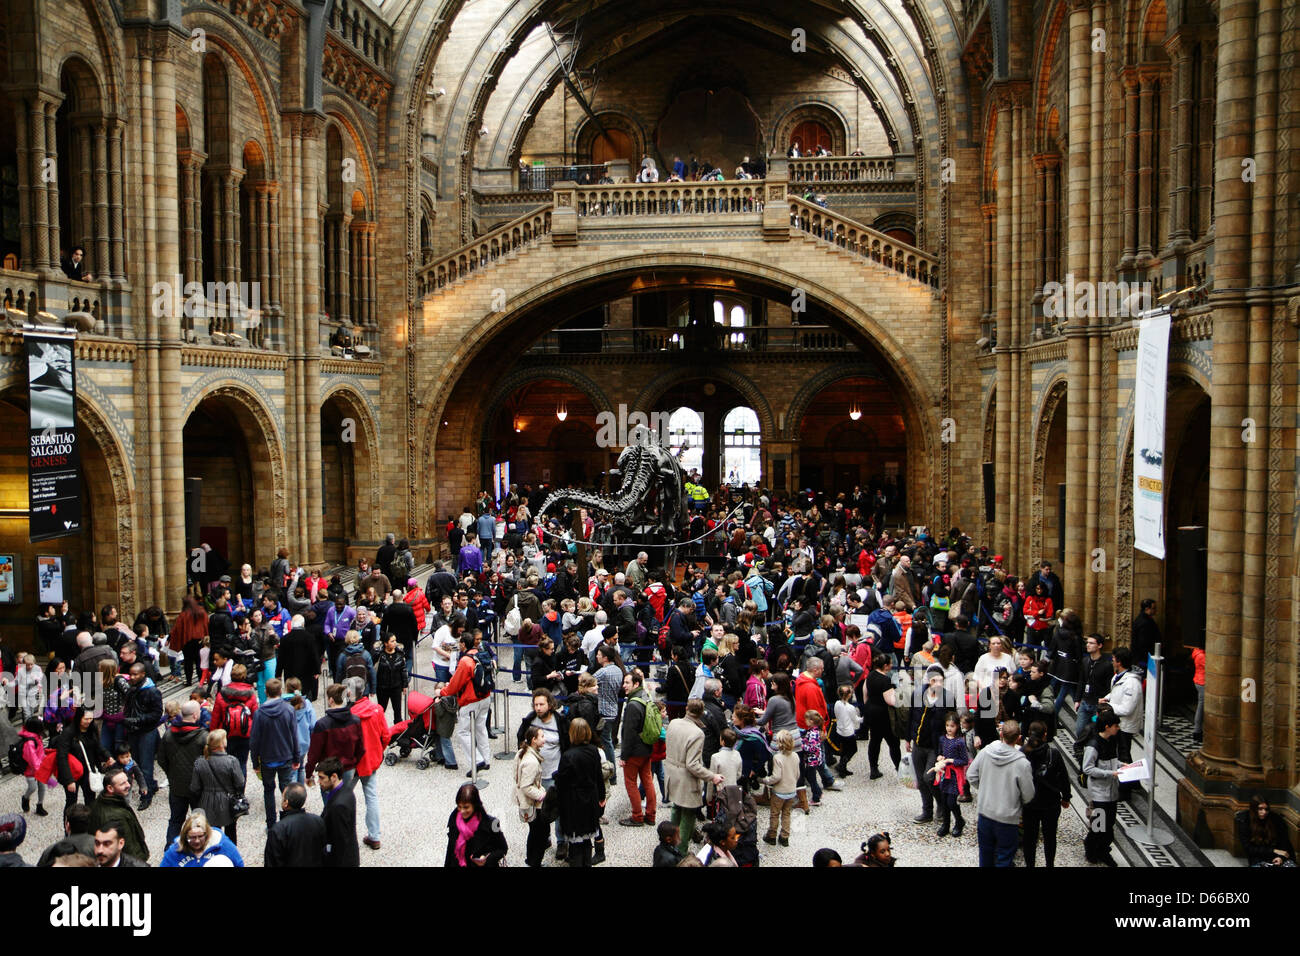 Visitors crowd into the central hall of the Natural History museum, London, UK. - Stock Image